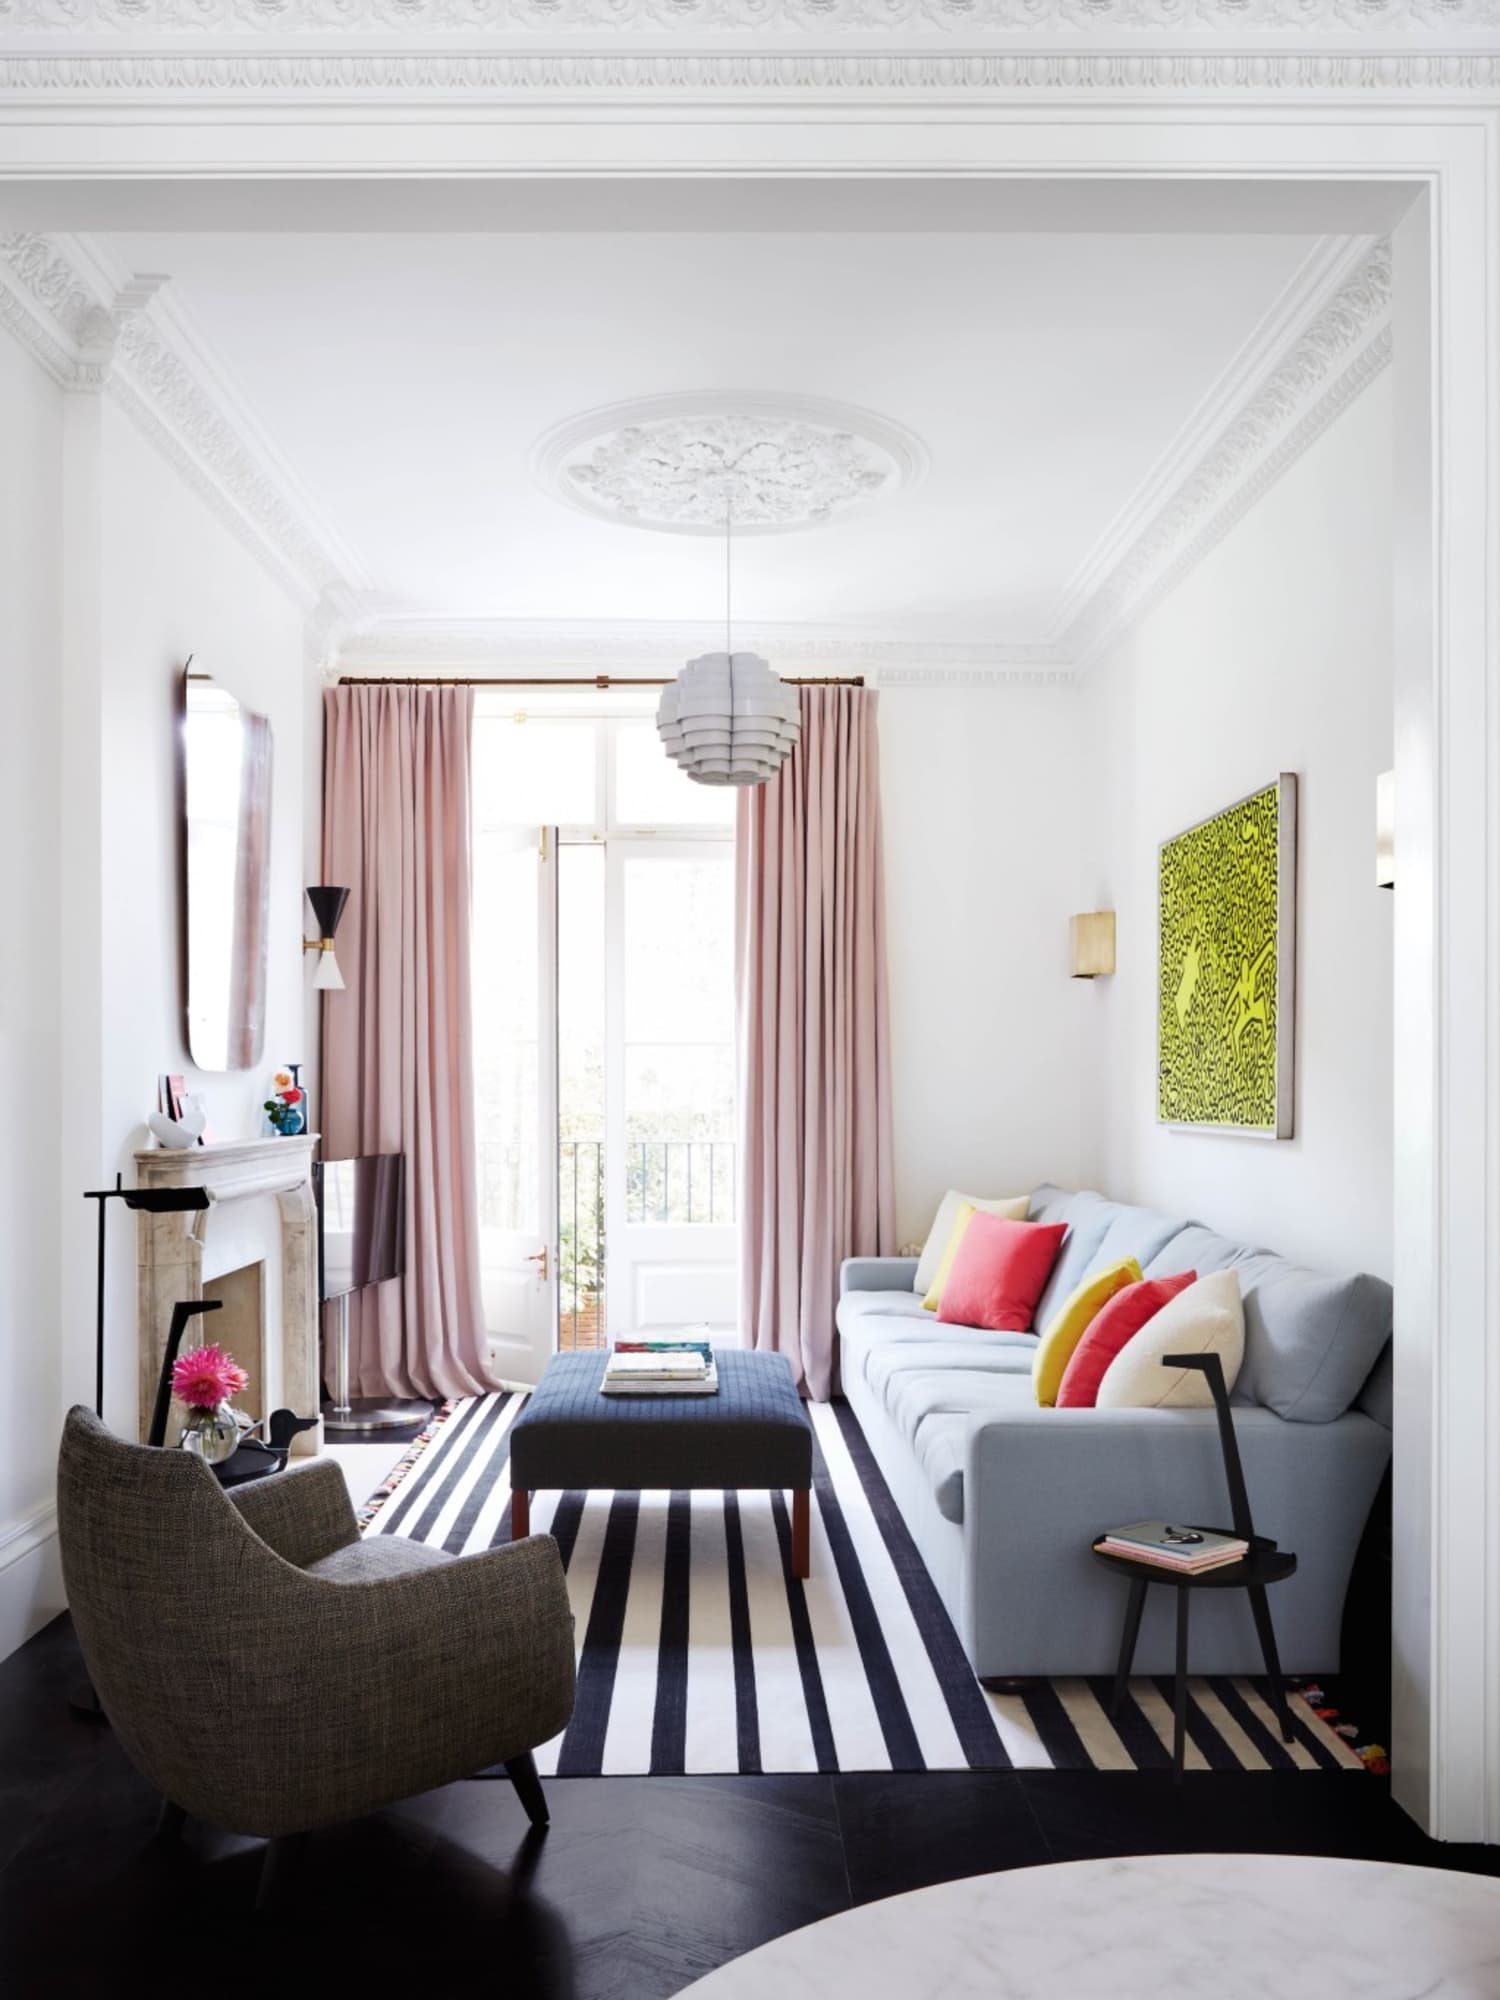 Decorating Mistakes to Avoid | Apartment Therapy